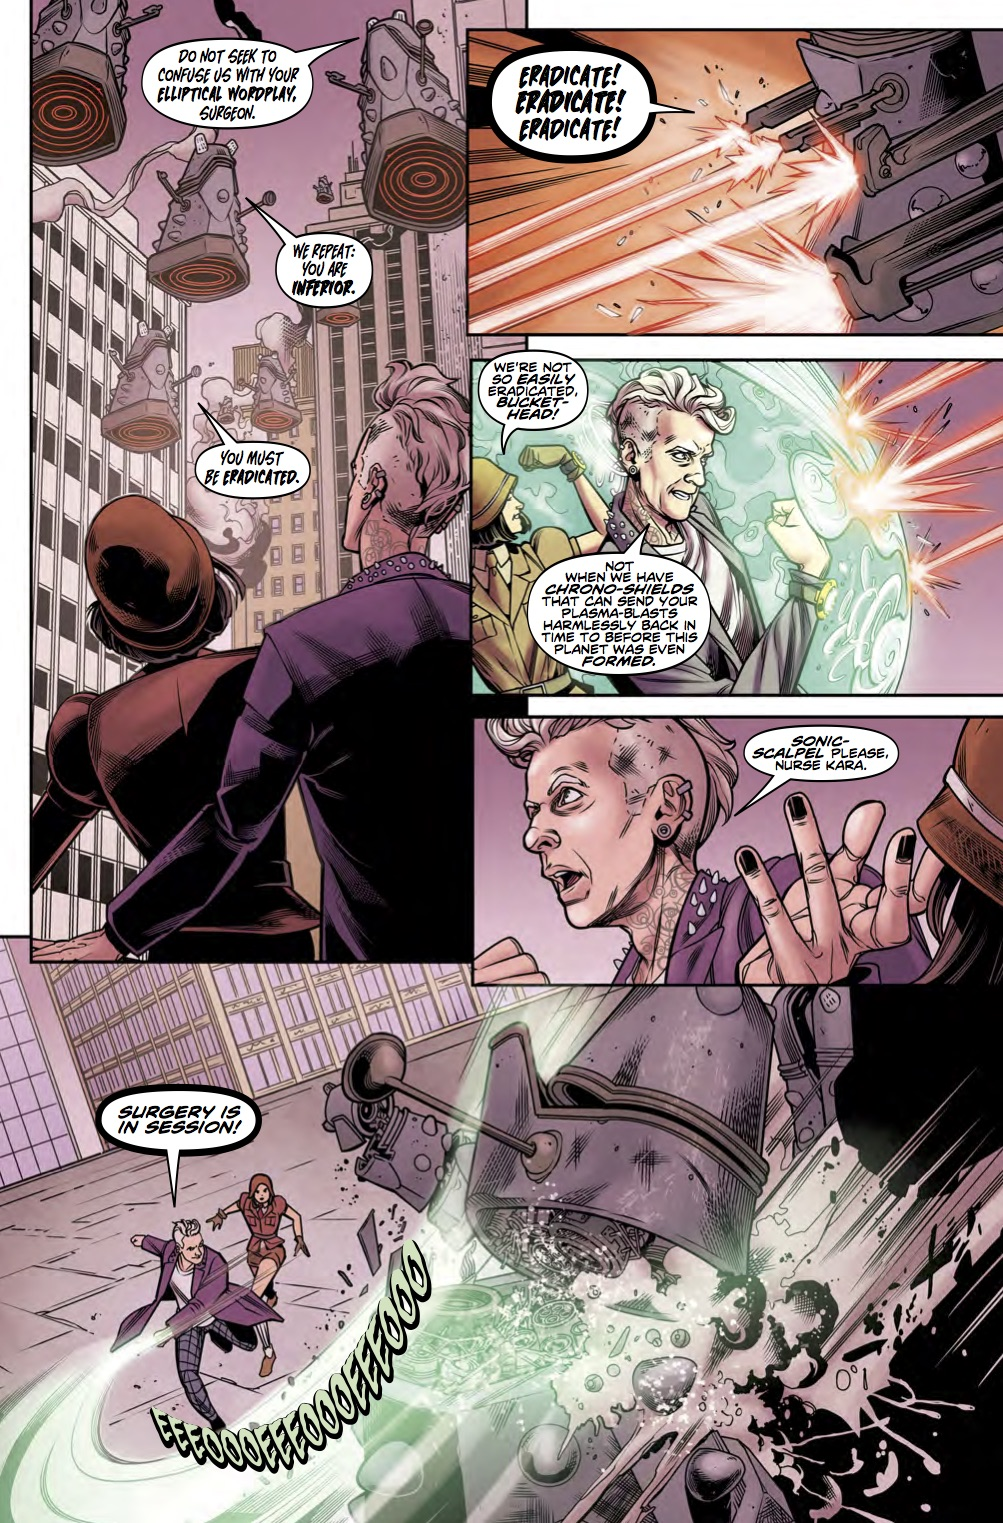 The Twelfth Doctor 2 14 Preview 2 (Credit: Titan)